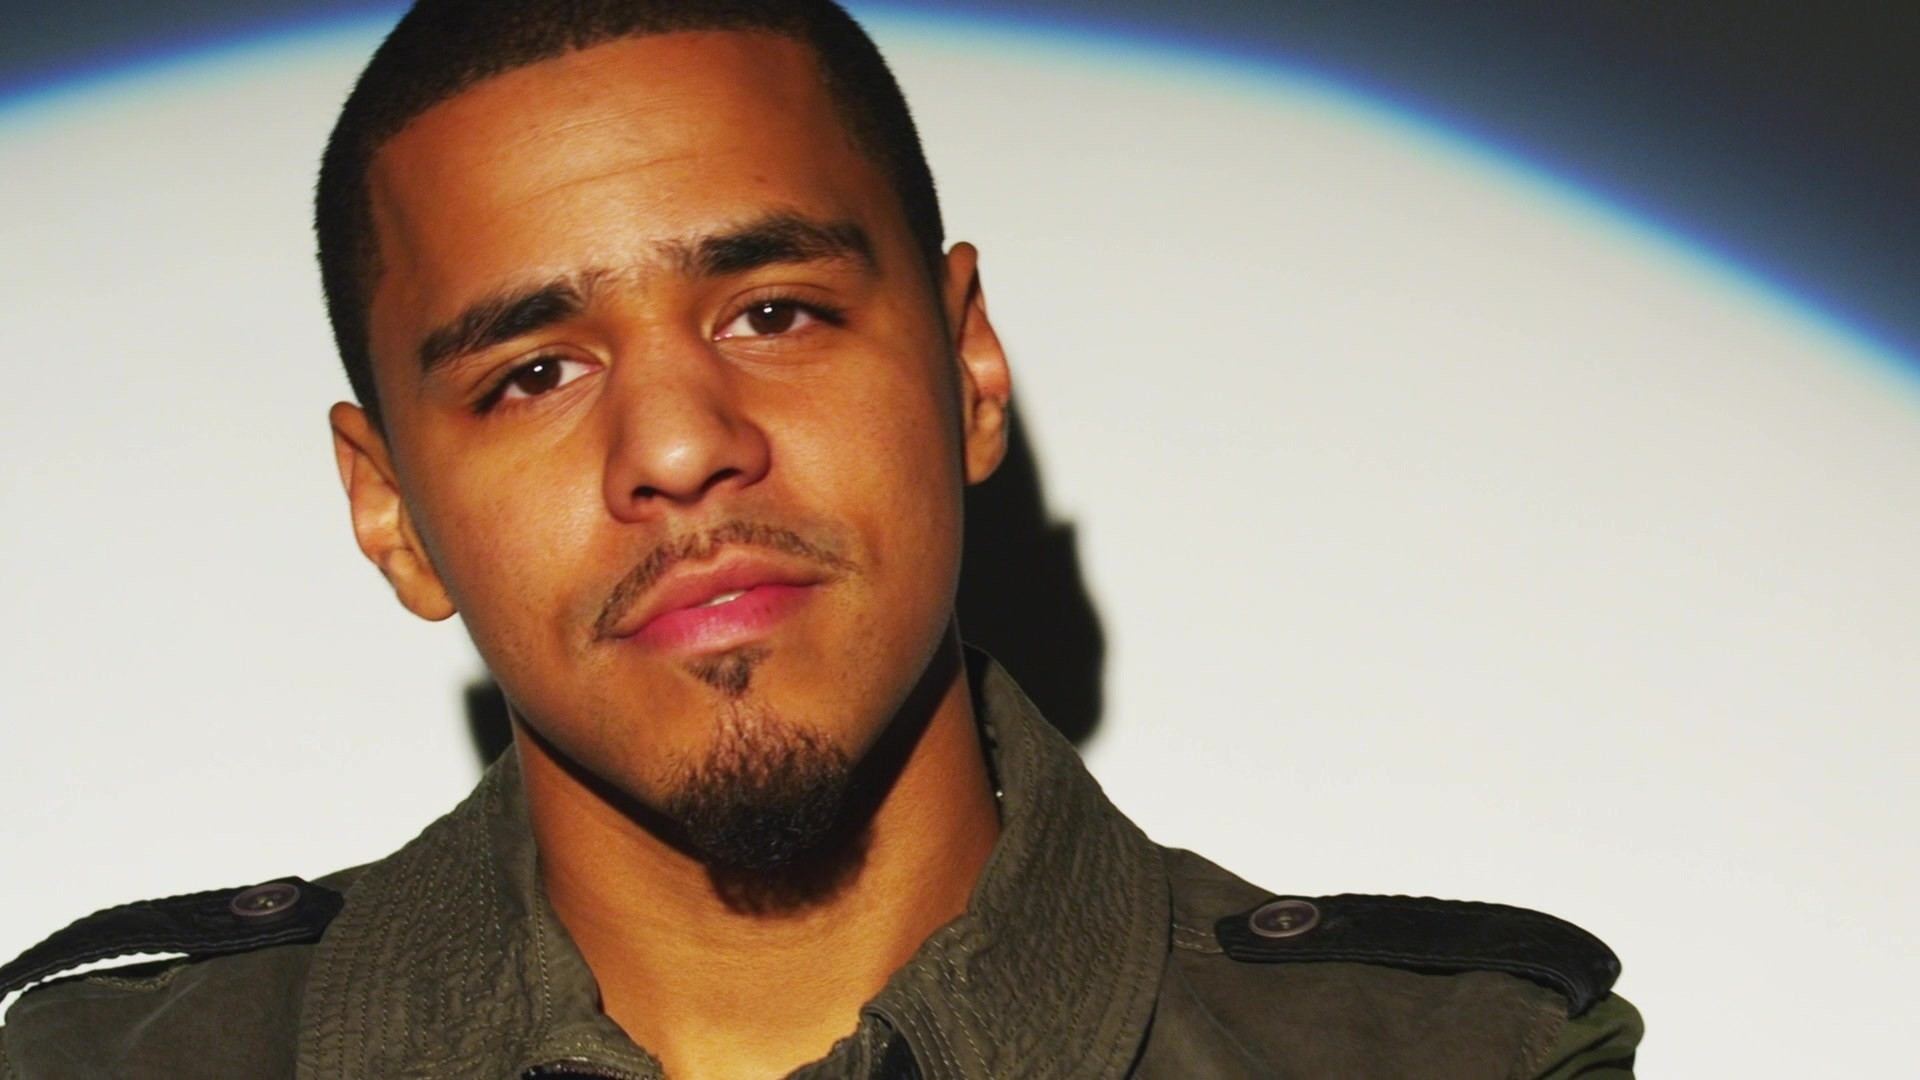 J Cole Background